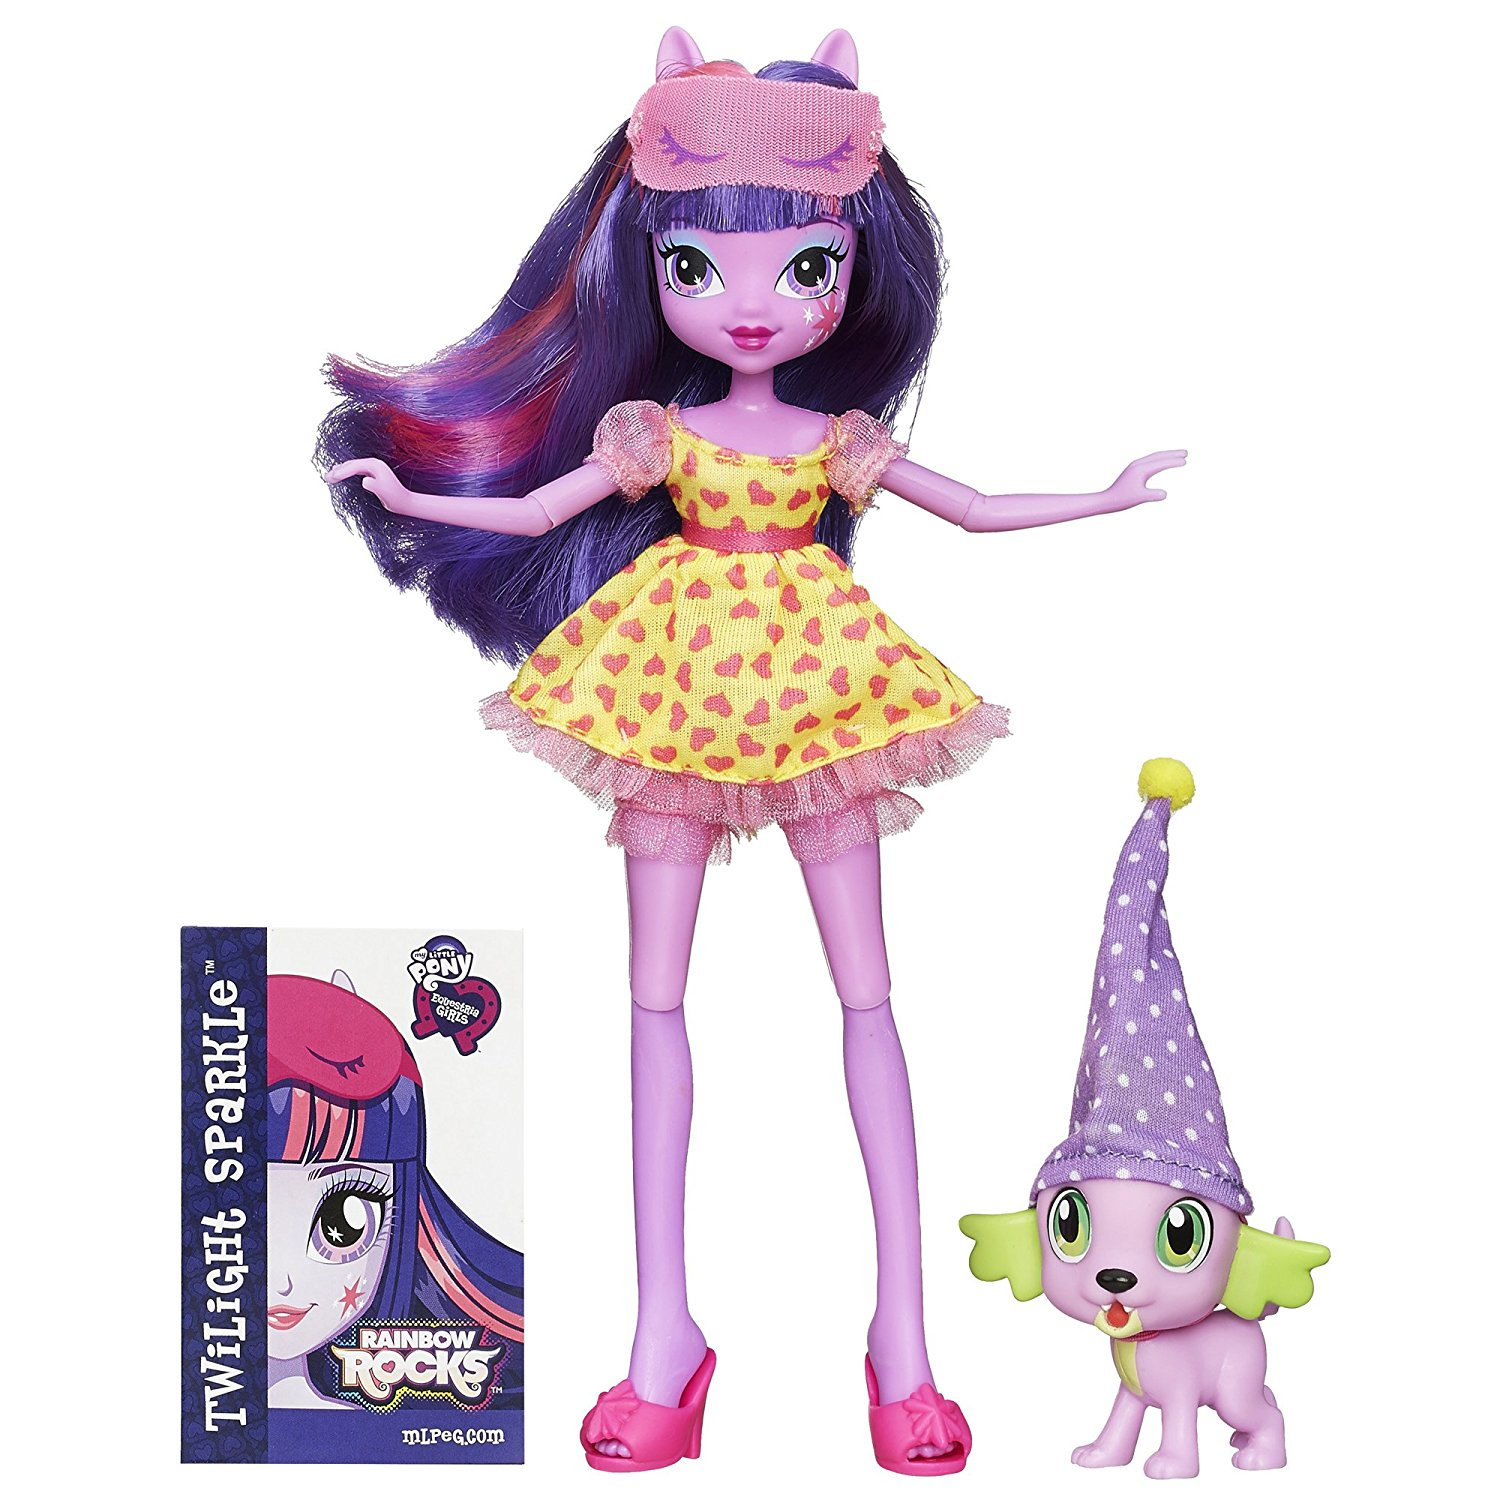 Equestria Girls Twilight and Spike, Sassy Equestria Girls Twilight Sparkle doll comes with Spike the Puppy pet By My Little Pony Ship from US